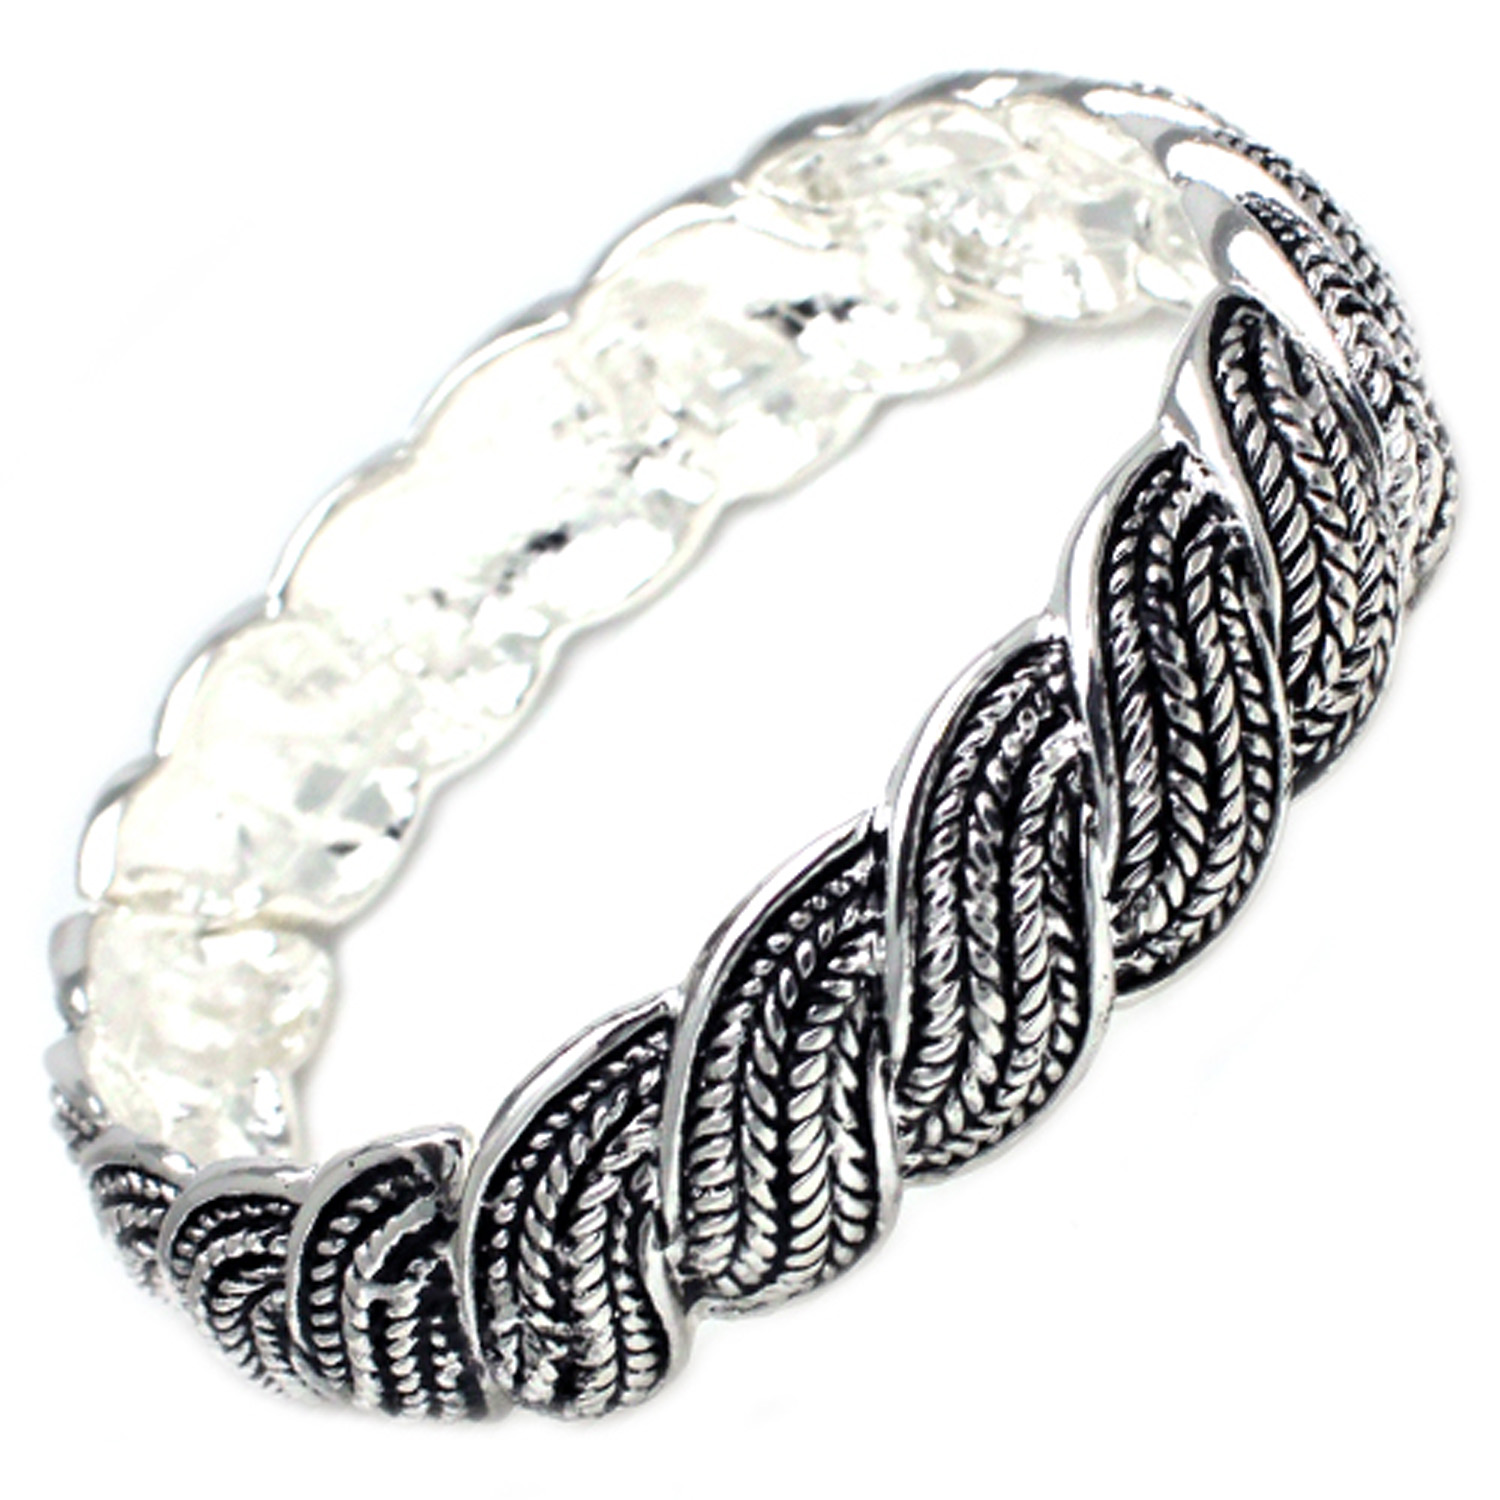 Antique Silver Plated Brass BANGLE in Twisted Wheat